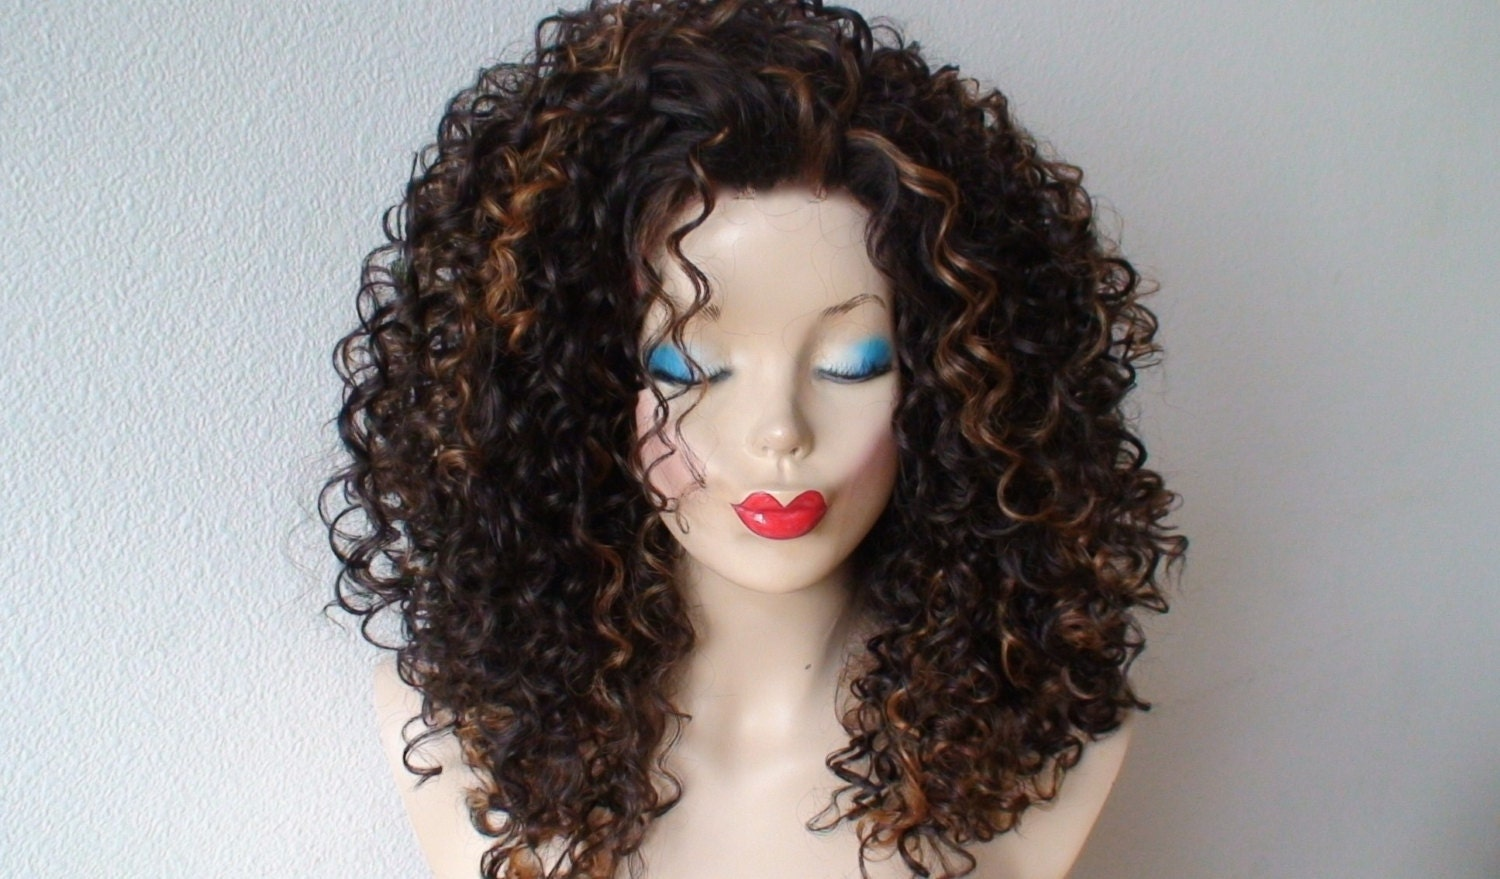 Lace front wig. Brown hair with auburn highlight deep curly